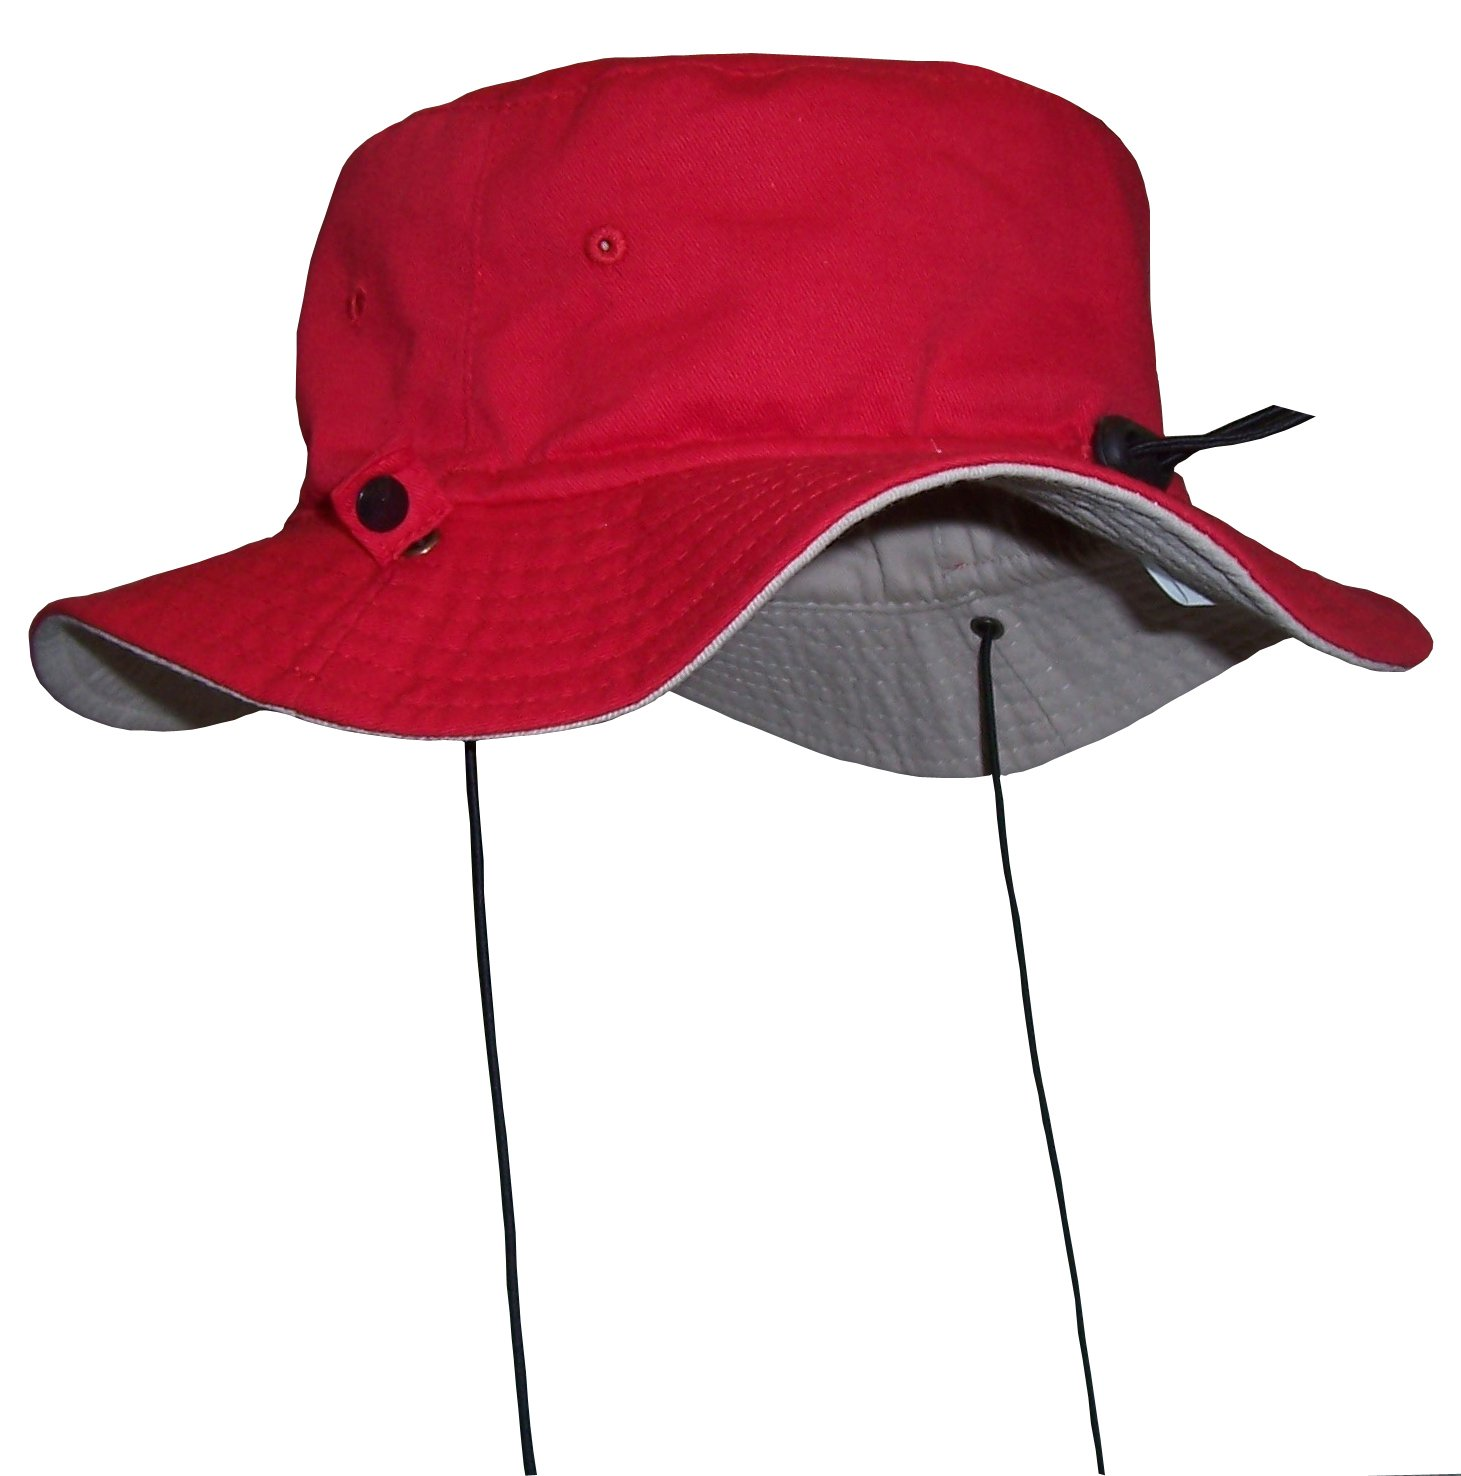 N'Ice Caps Kids Reversible Adjustable Cotton Twill Aussie Sun Protection Hat (Khaki/Red, 56cm (22'') 4-6yrs)